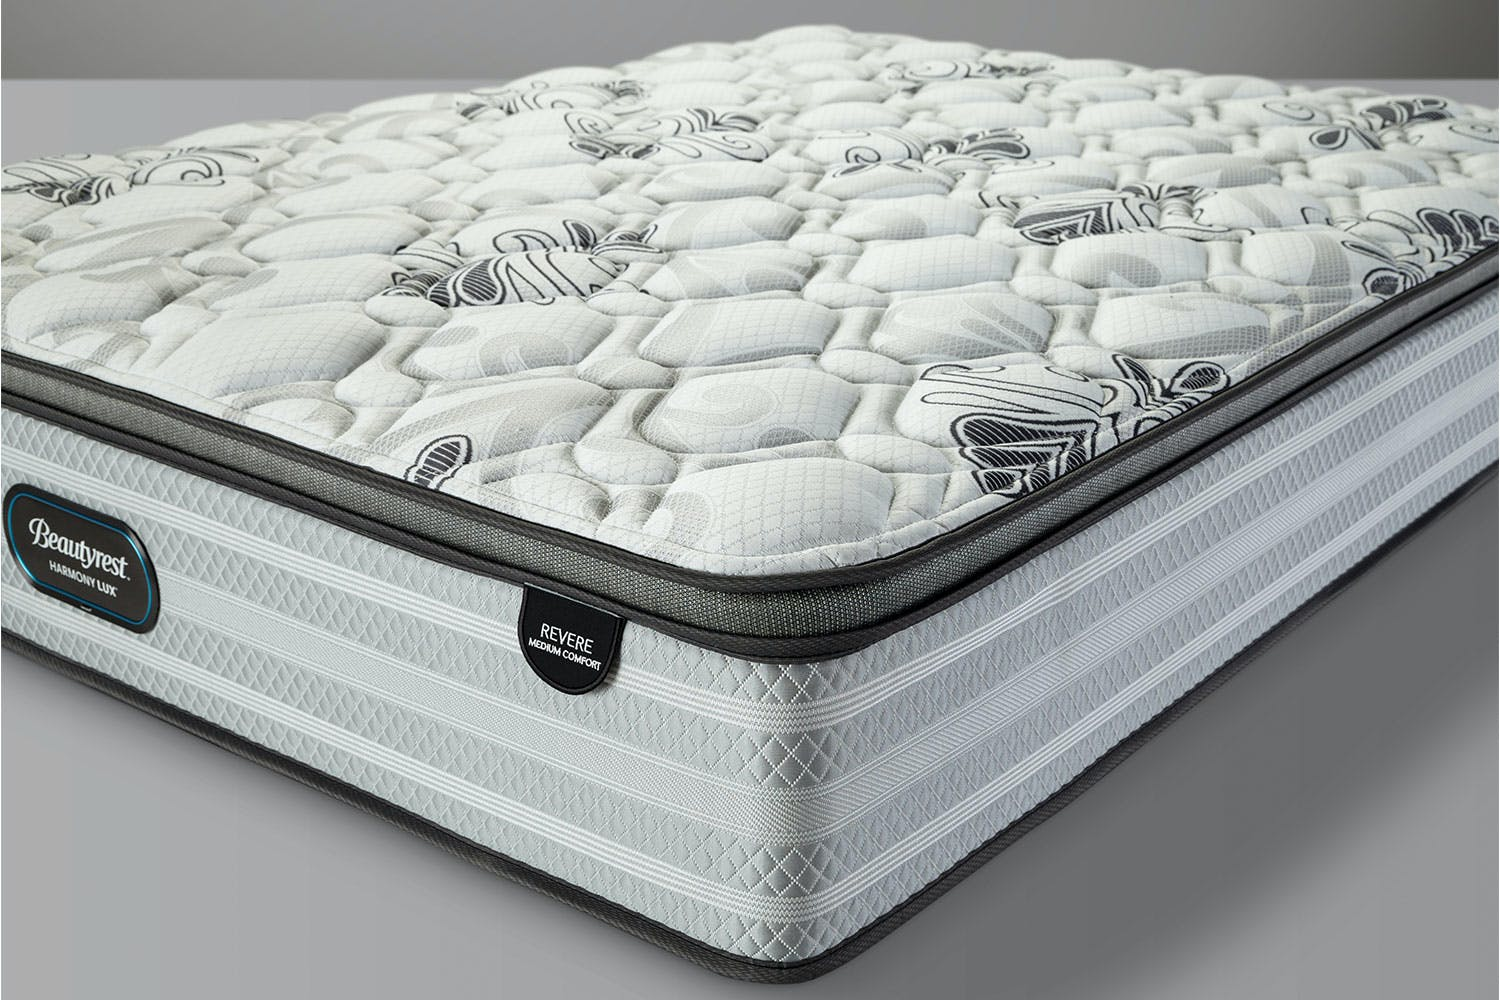 Revere Medium Queen Mattress by Beautyrest